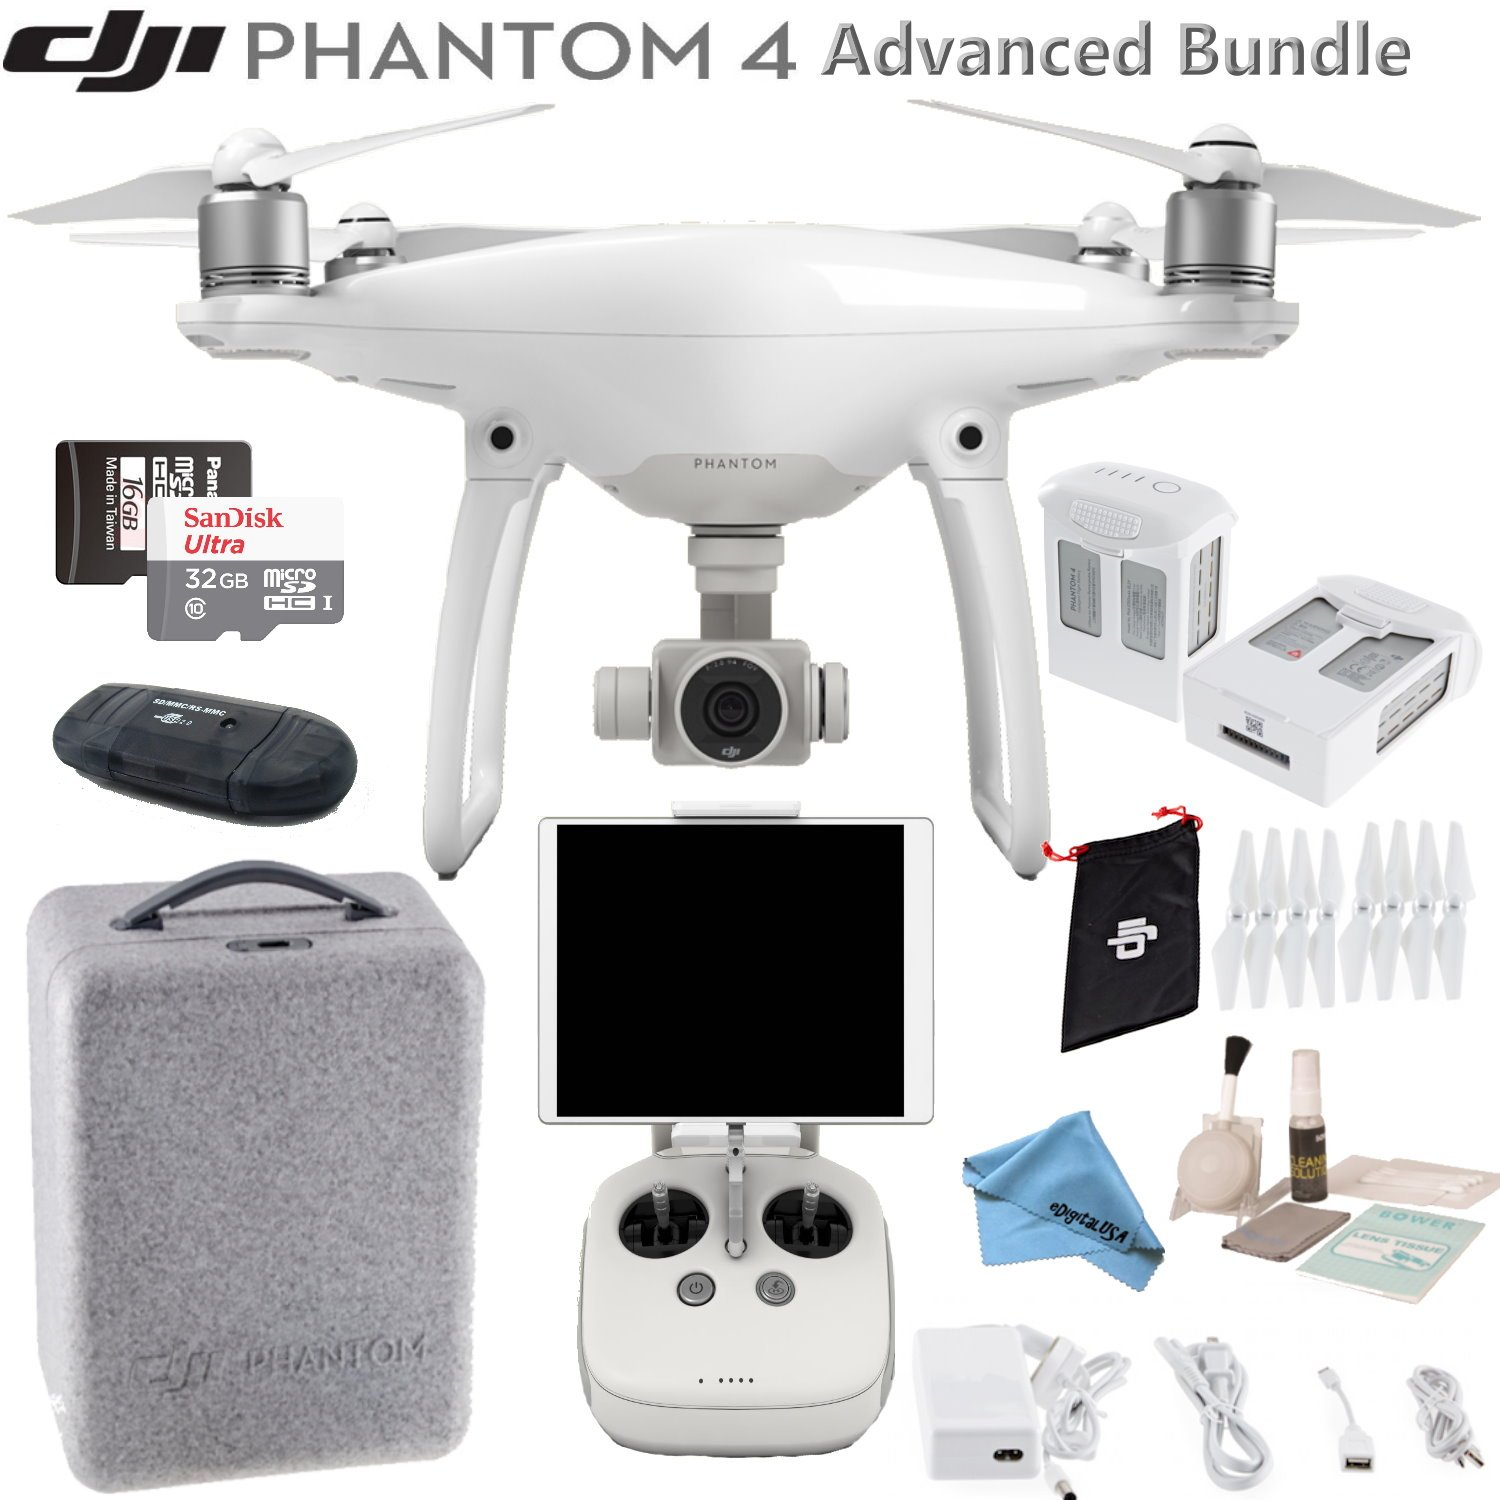 DJI Phantom 4 Quadcopter w/ Advanced Bundle: Includes 2 Intelligent Flight Batteries, SanDisk 32GB MicroSD Card and more..